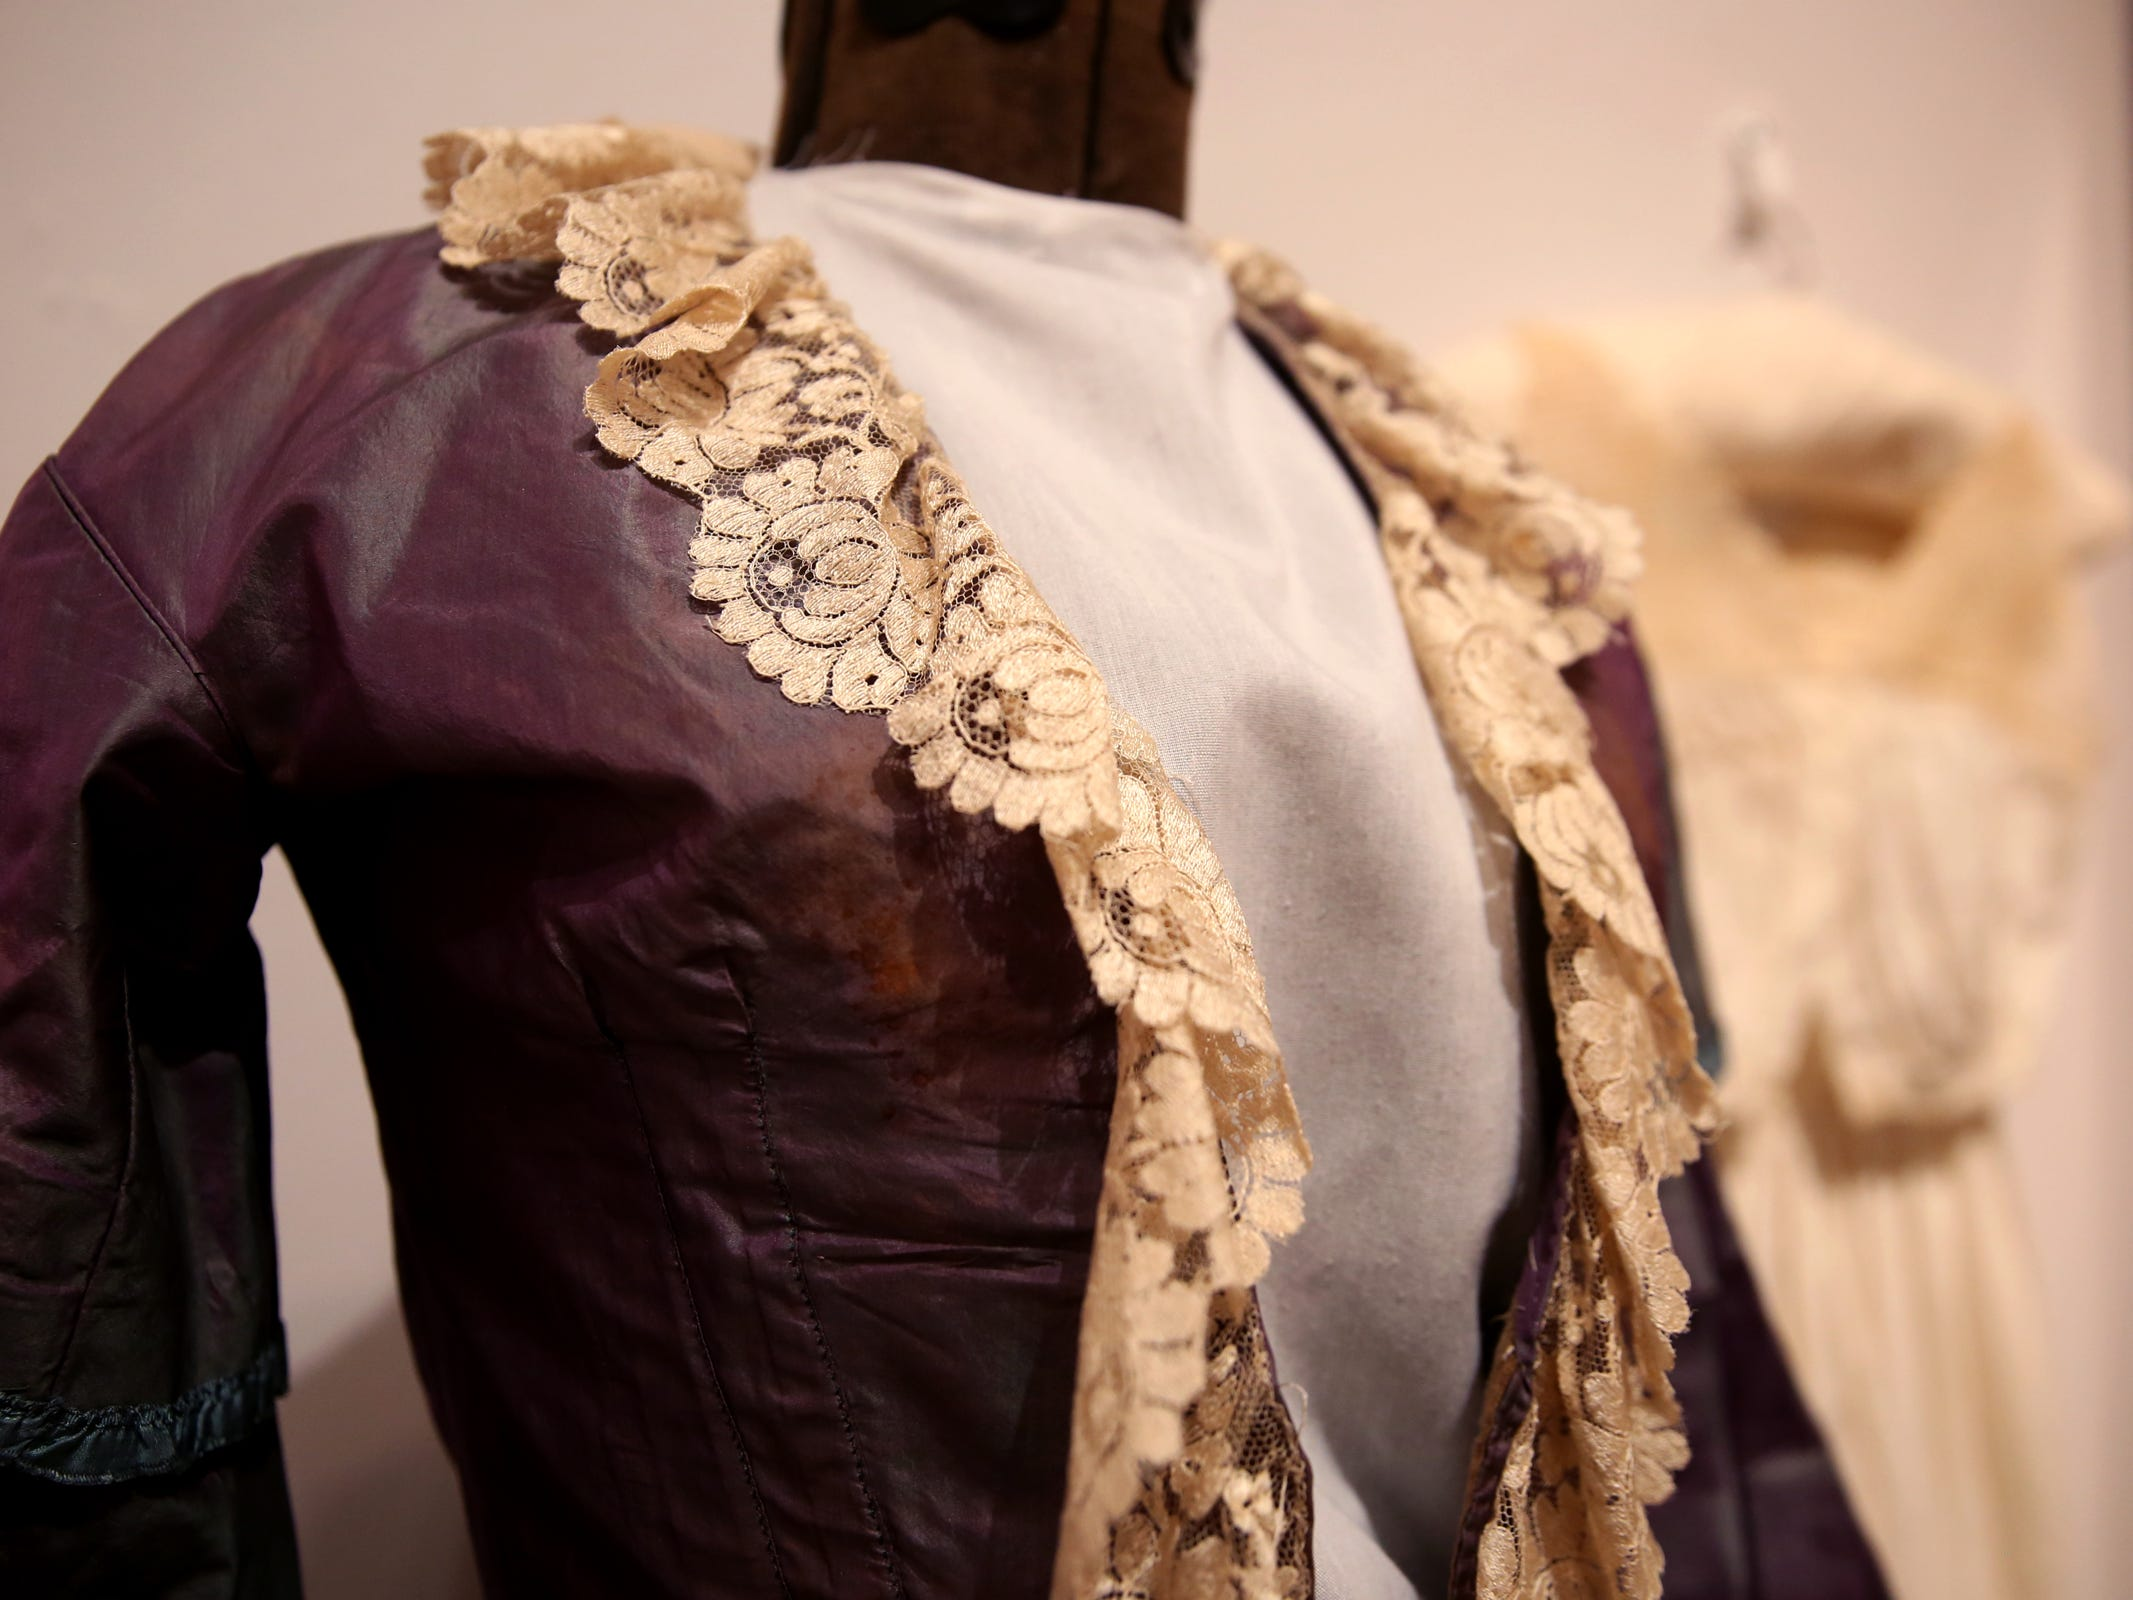 A historical wedding dress from the Keizer Heritage Center, part of the Romance: Stories of Love and Passion in the Mid-Willamette Valley exhibit running through April 20 at the Willamette Heritage Center in Salem on Thursday, Jan. 31, 2019.